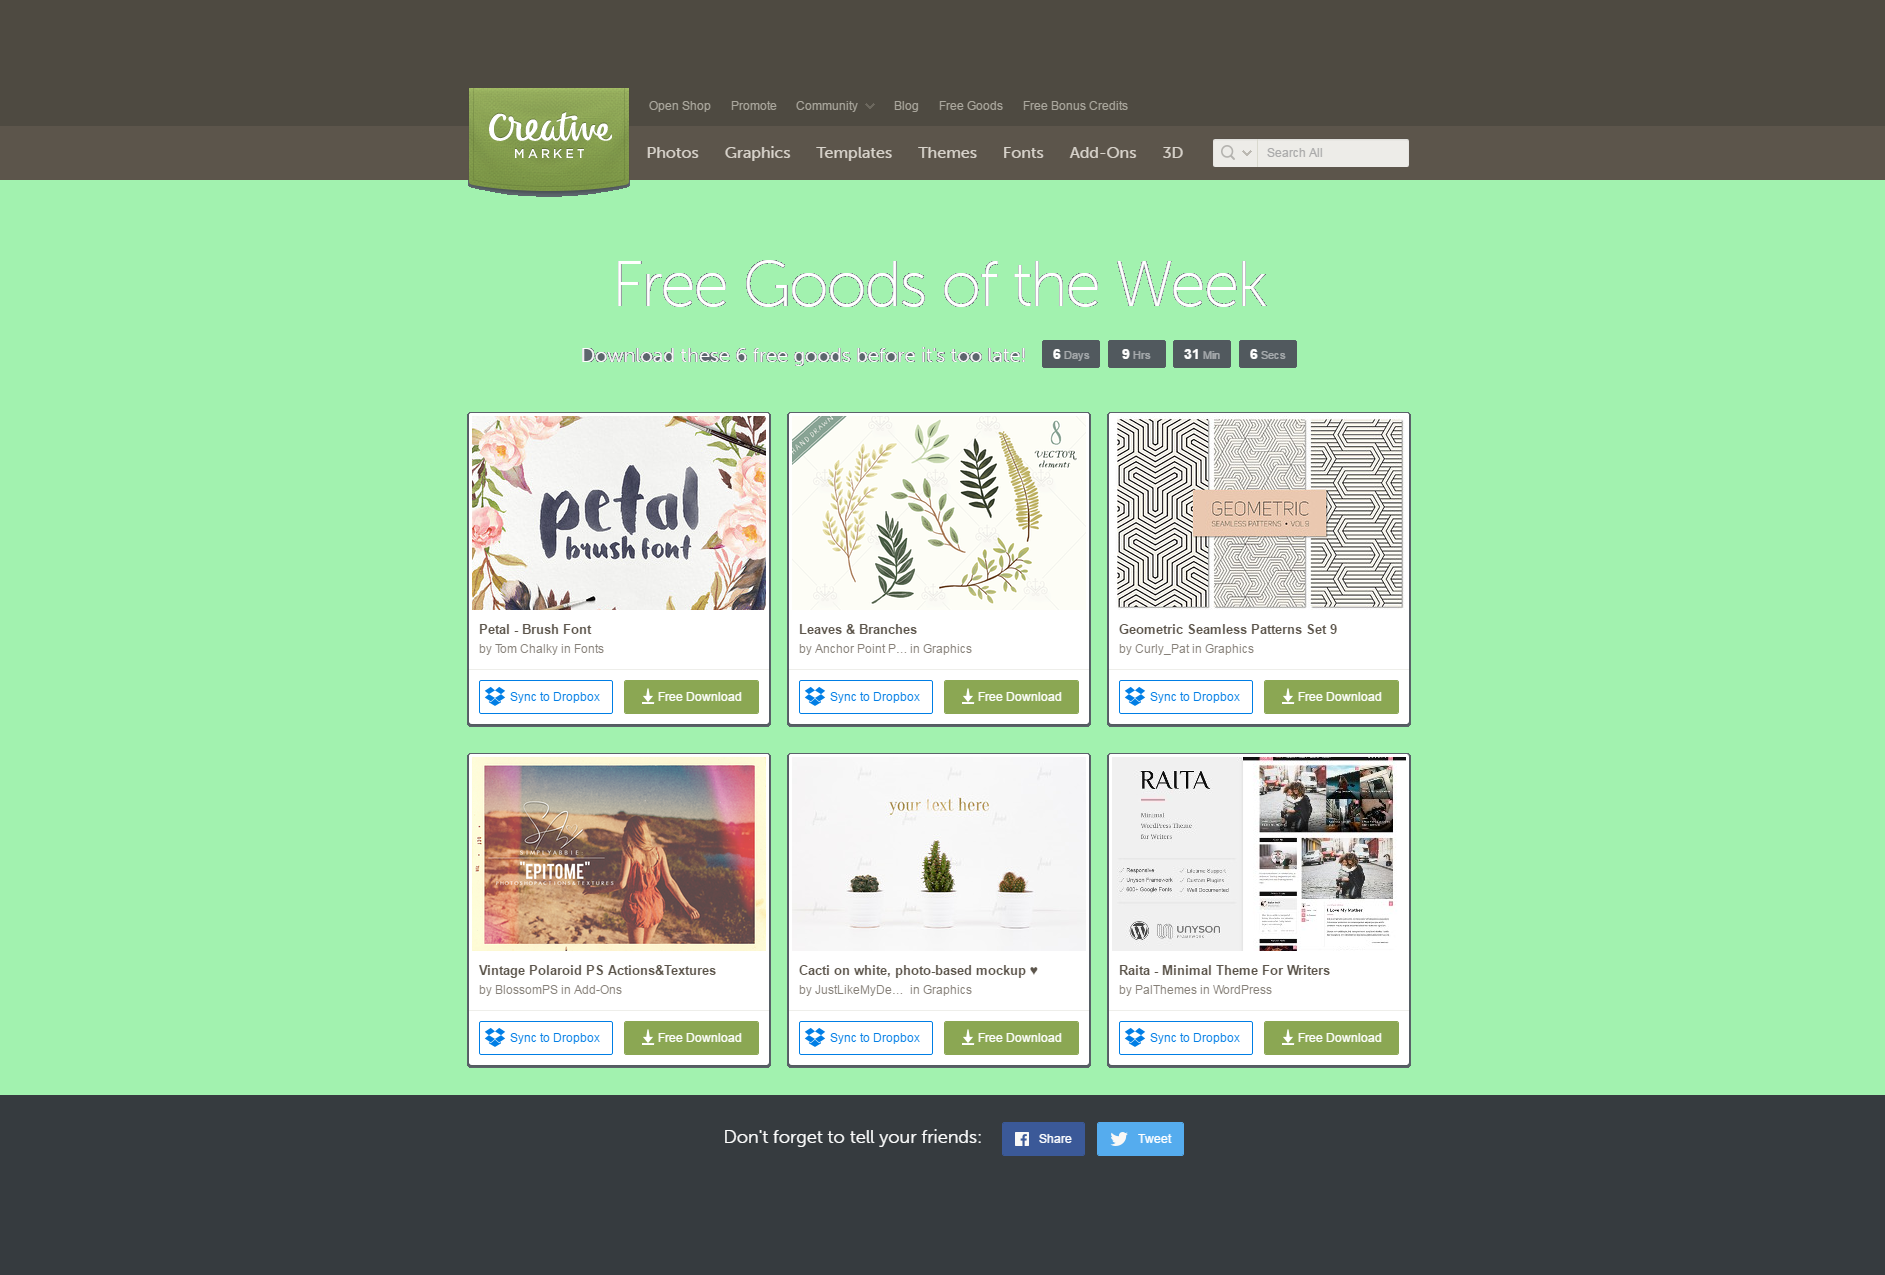 Free Goods of the Week by Creative Market. Download these 6 freebies until Sunday! Enjoy them!